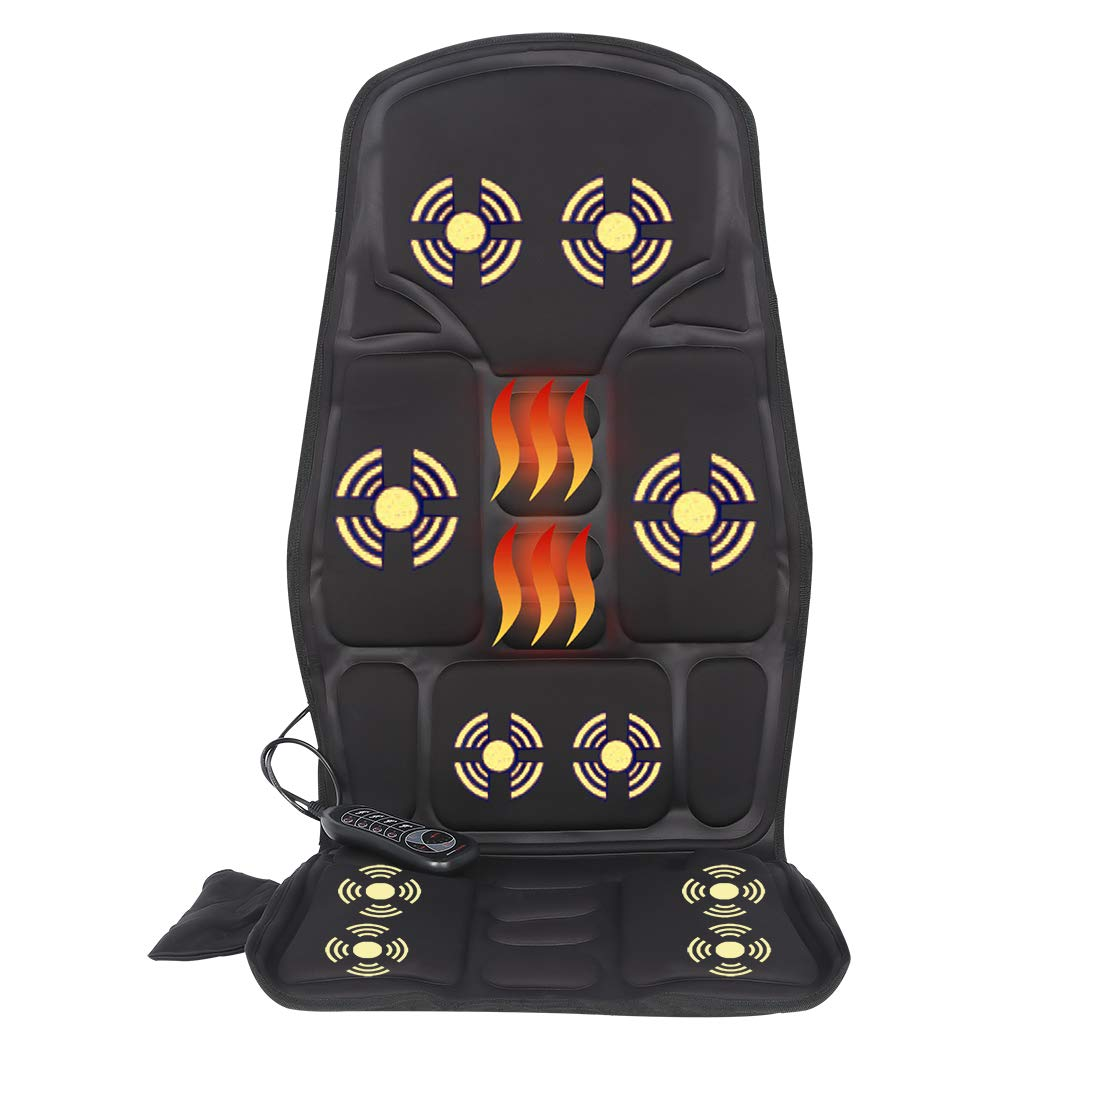 Sotion Vibrating Car Seat Back Massager for Car Chair Massage Pad Cushion, 10 Motors Vibration Heating Therapy to Relieve Stress for Back, Shoulder and Thighs